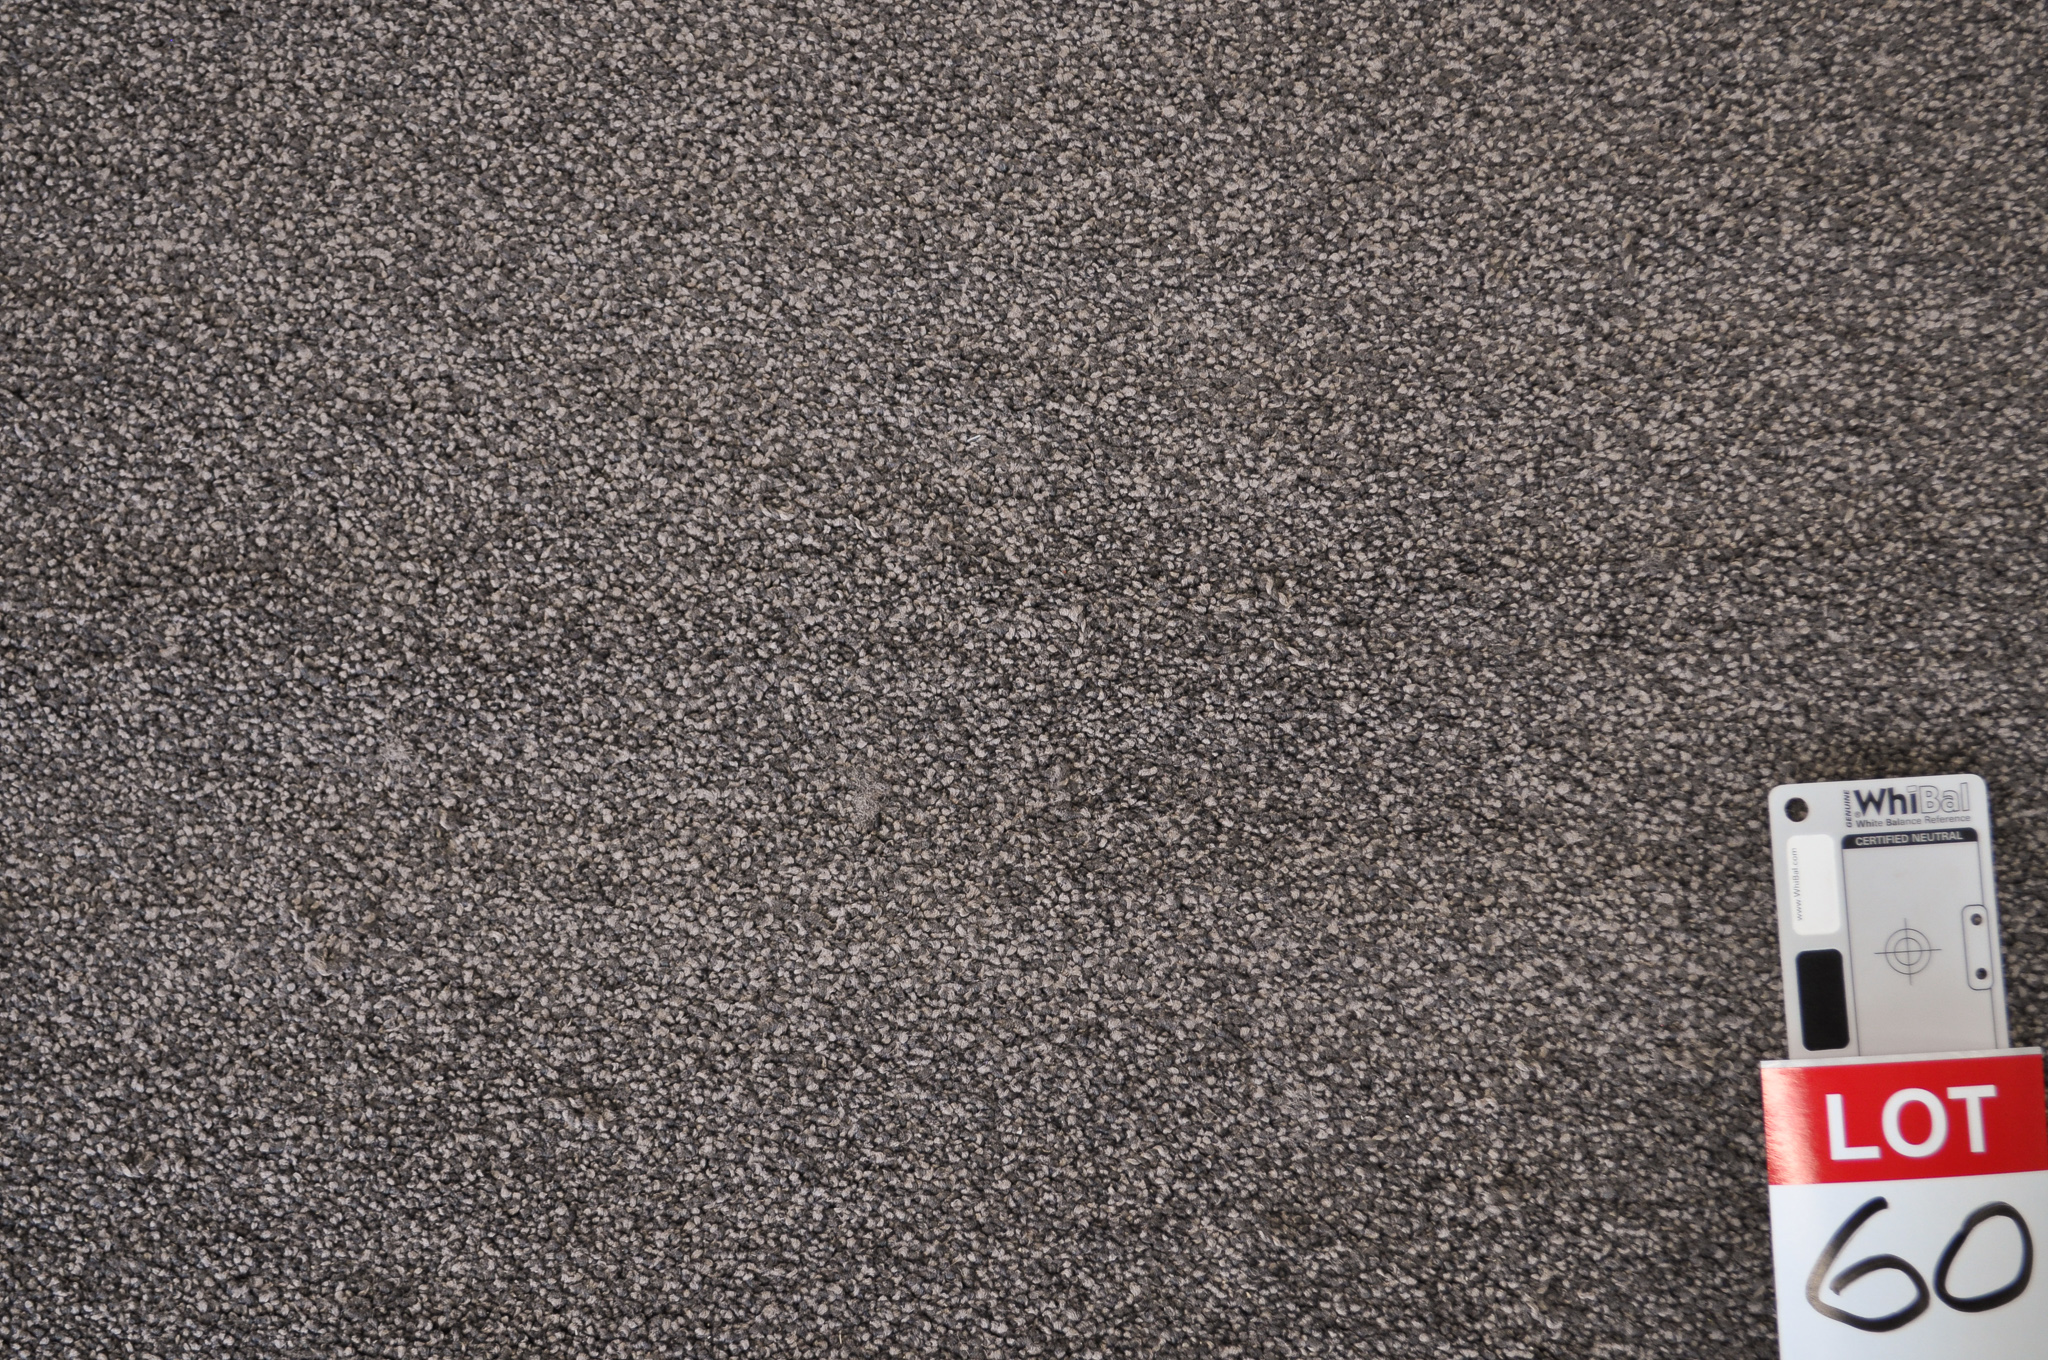 dark grey colored, nylon twist pile roll of carpet on sale at Concord Floors, it being a remnant roll in Concord Floor's warehouse.